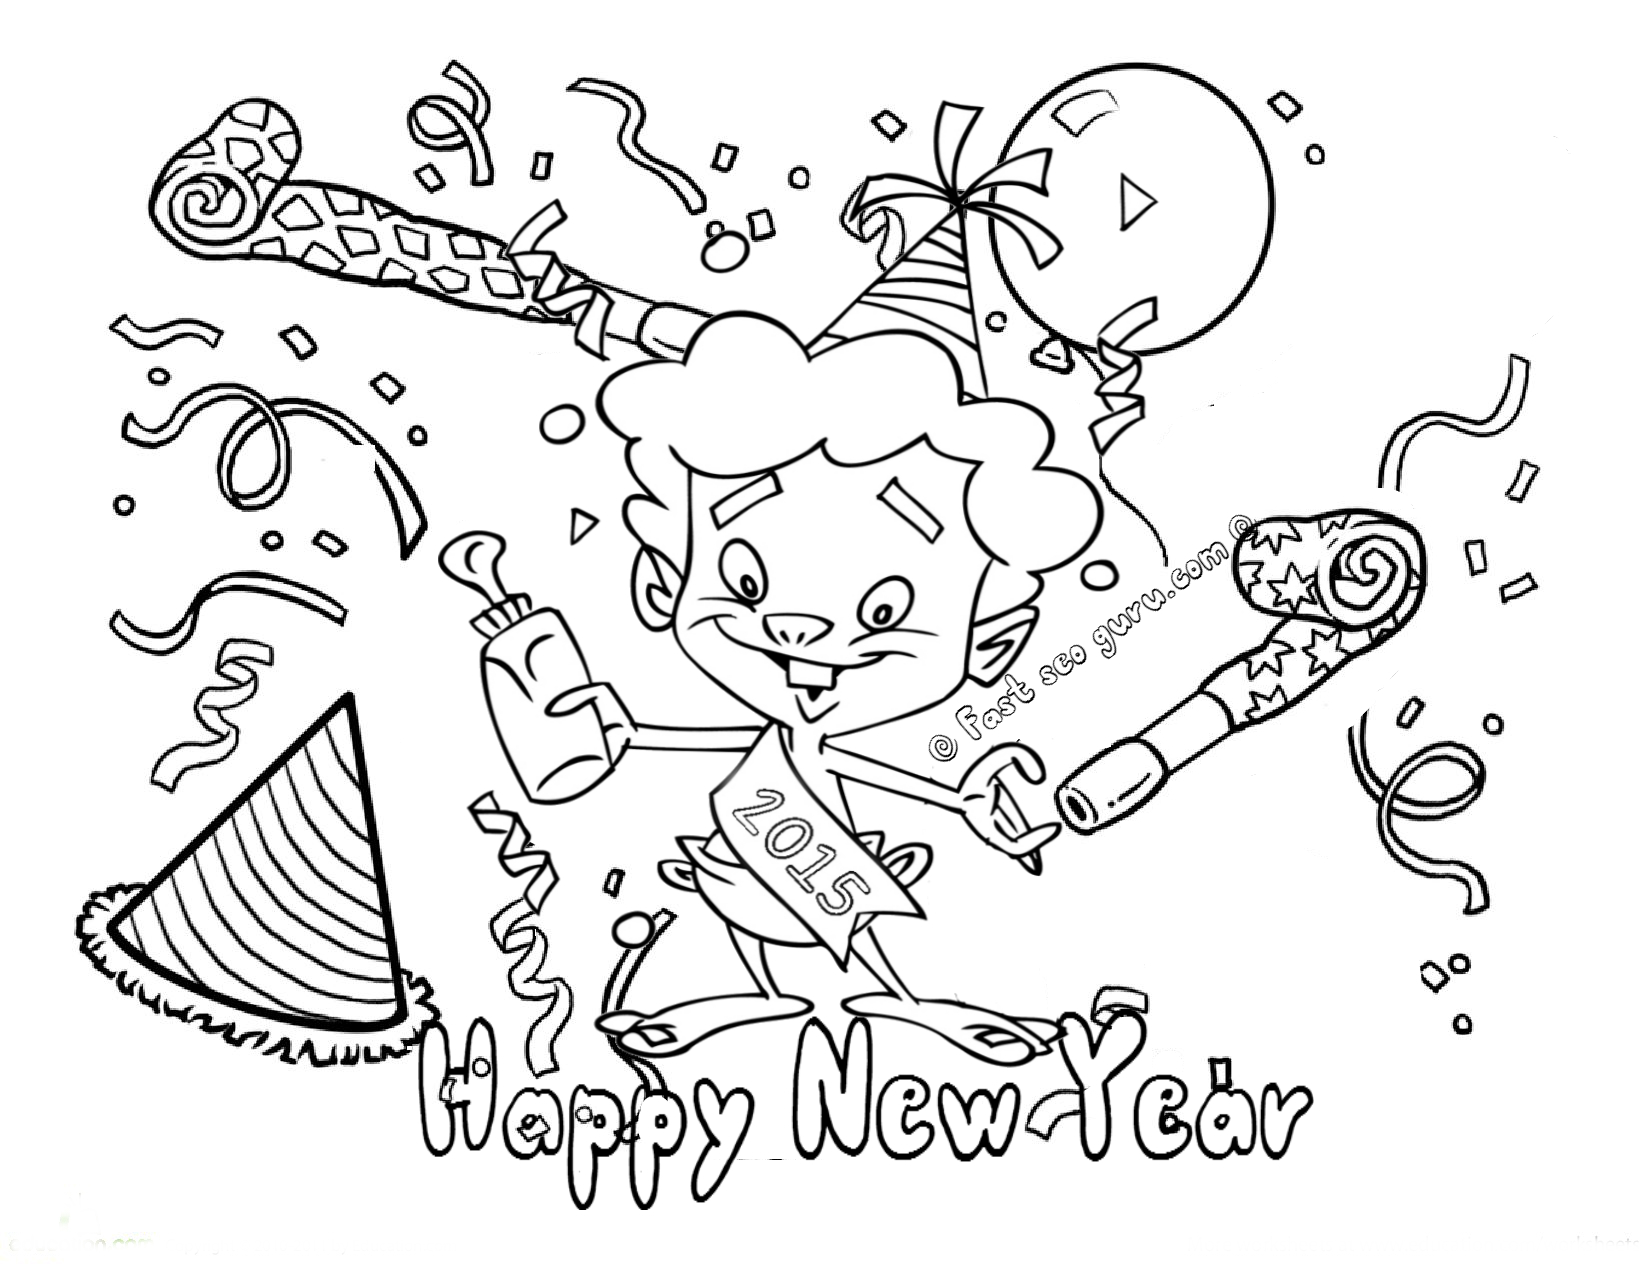 Crayola Coloring Pages For Happy New Year 2015 New New Year Coloring Pages